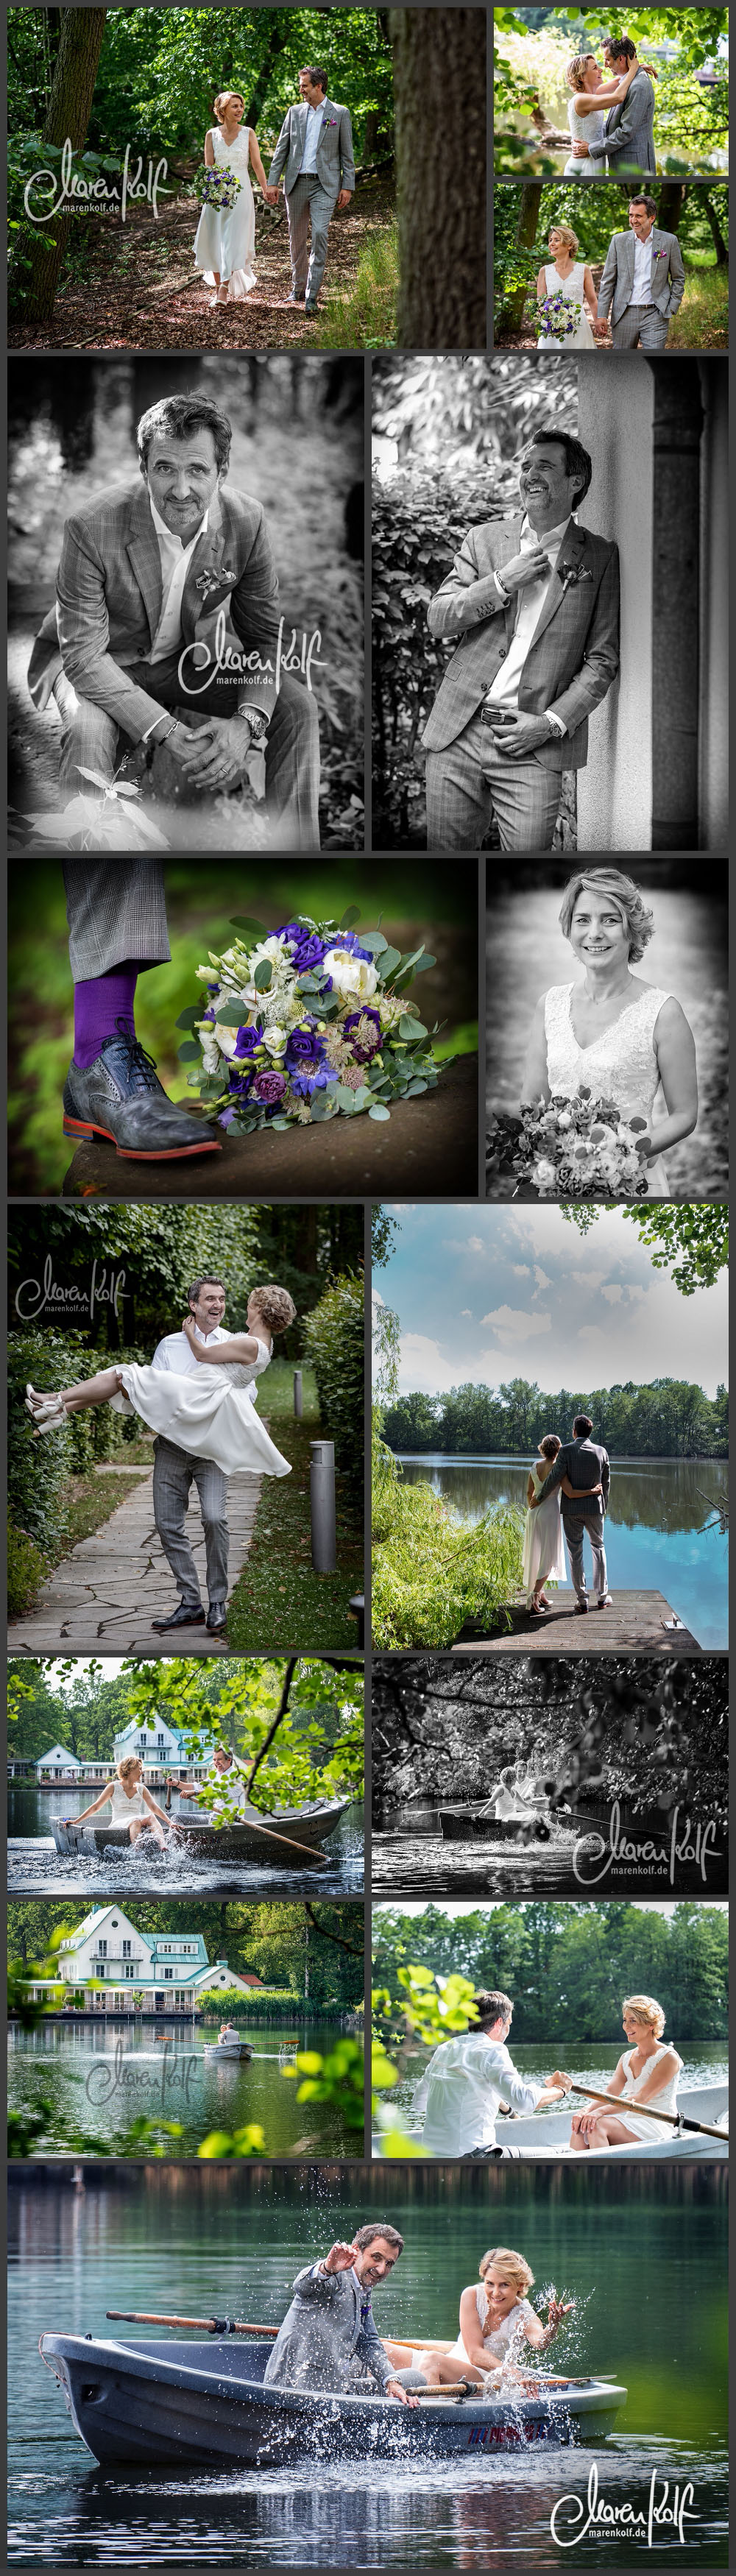 after-wedding-shooting-seefugium-hannover-isernhagen-maren-kolf-fotografie-wedemark